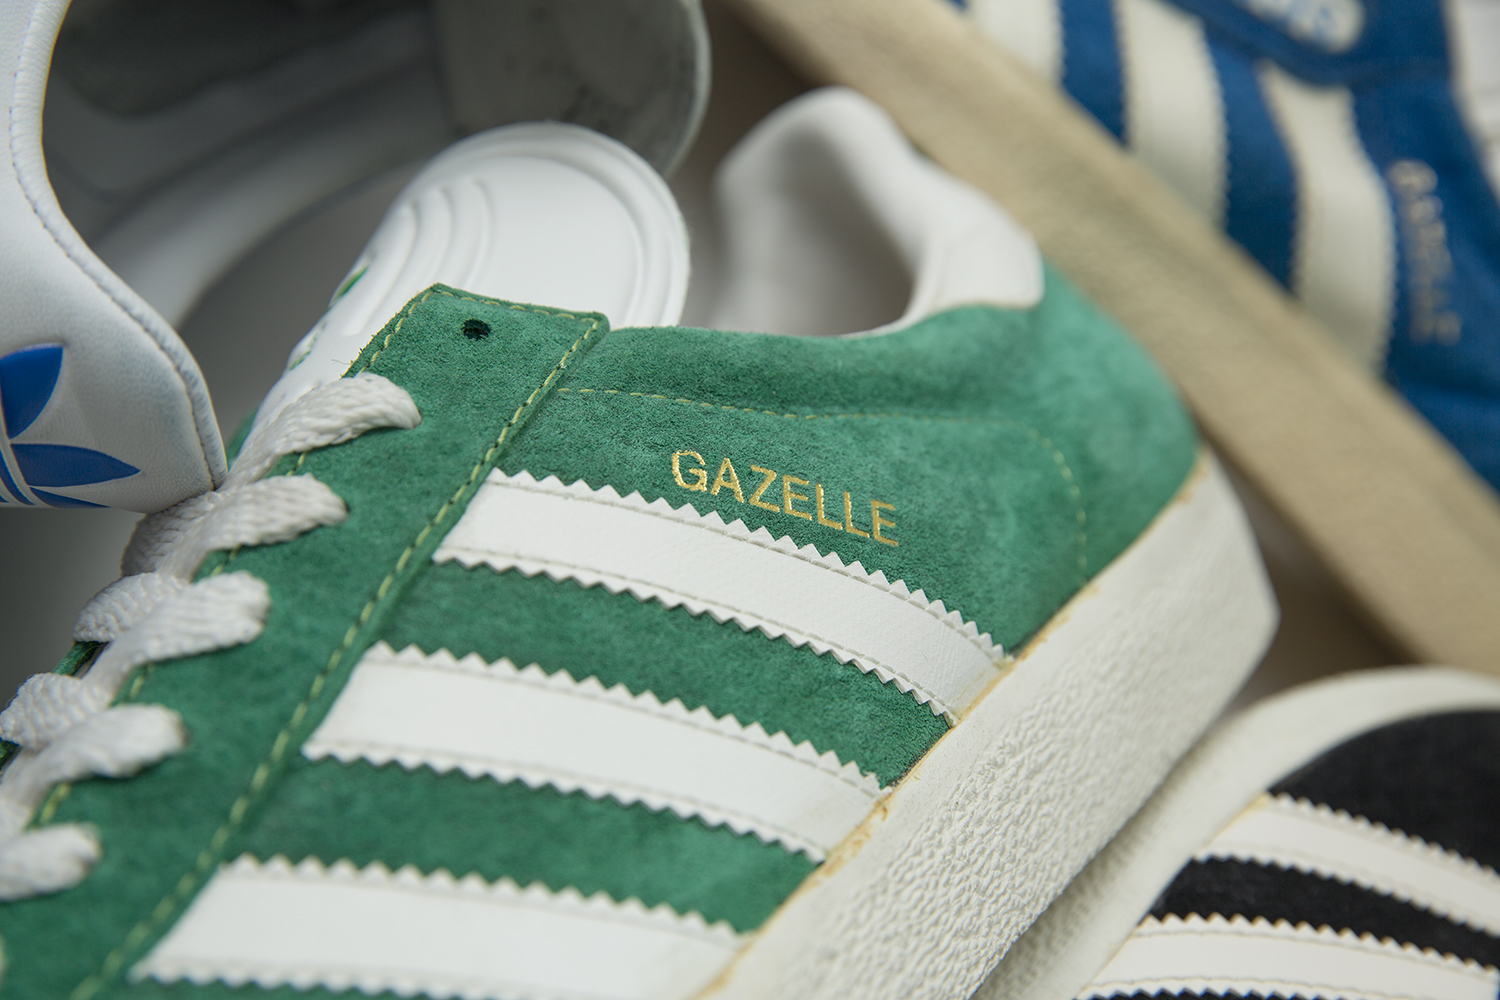 size_HQ_Lockup_adidas_originals_gazelle-11